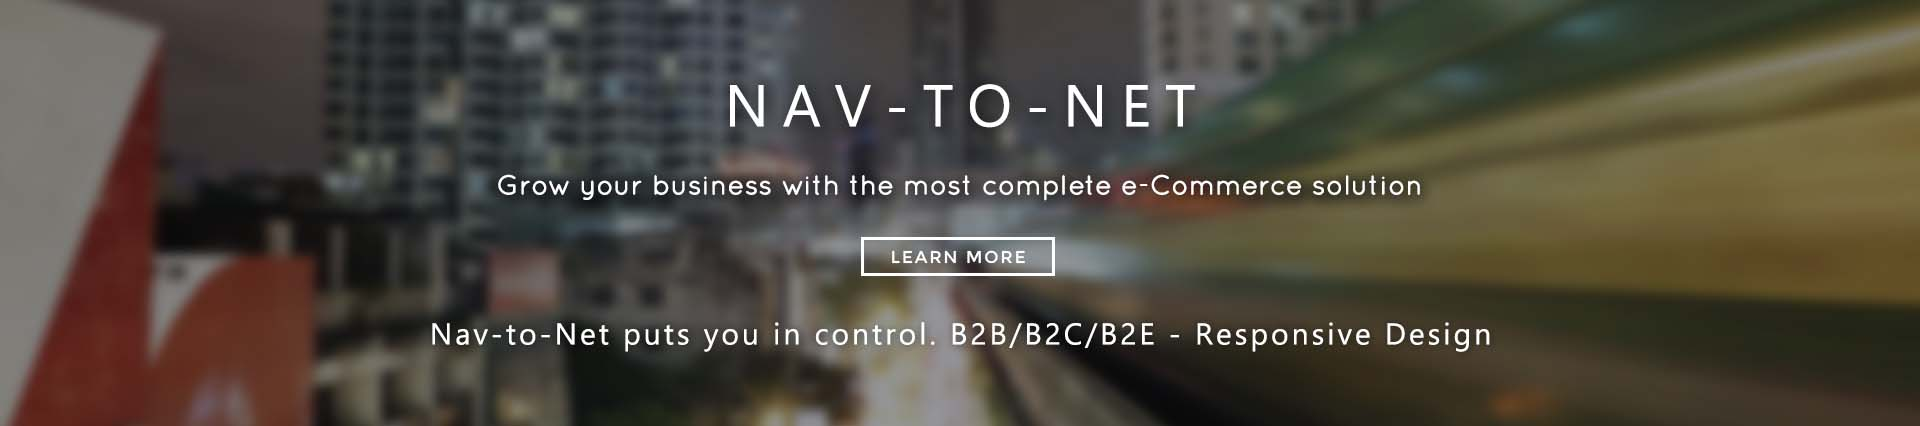 Nav-to-Net is the most comprehensive solution for NAV e-Commerce